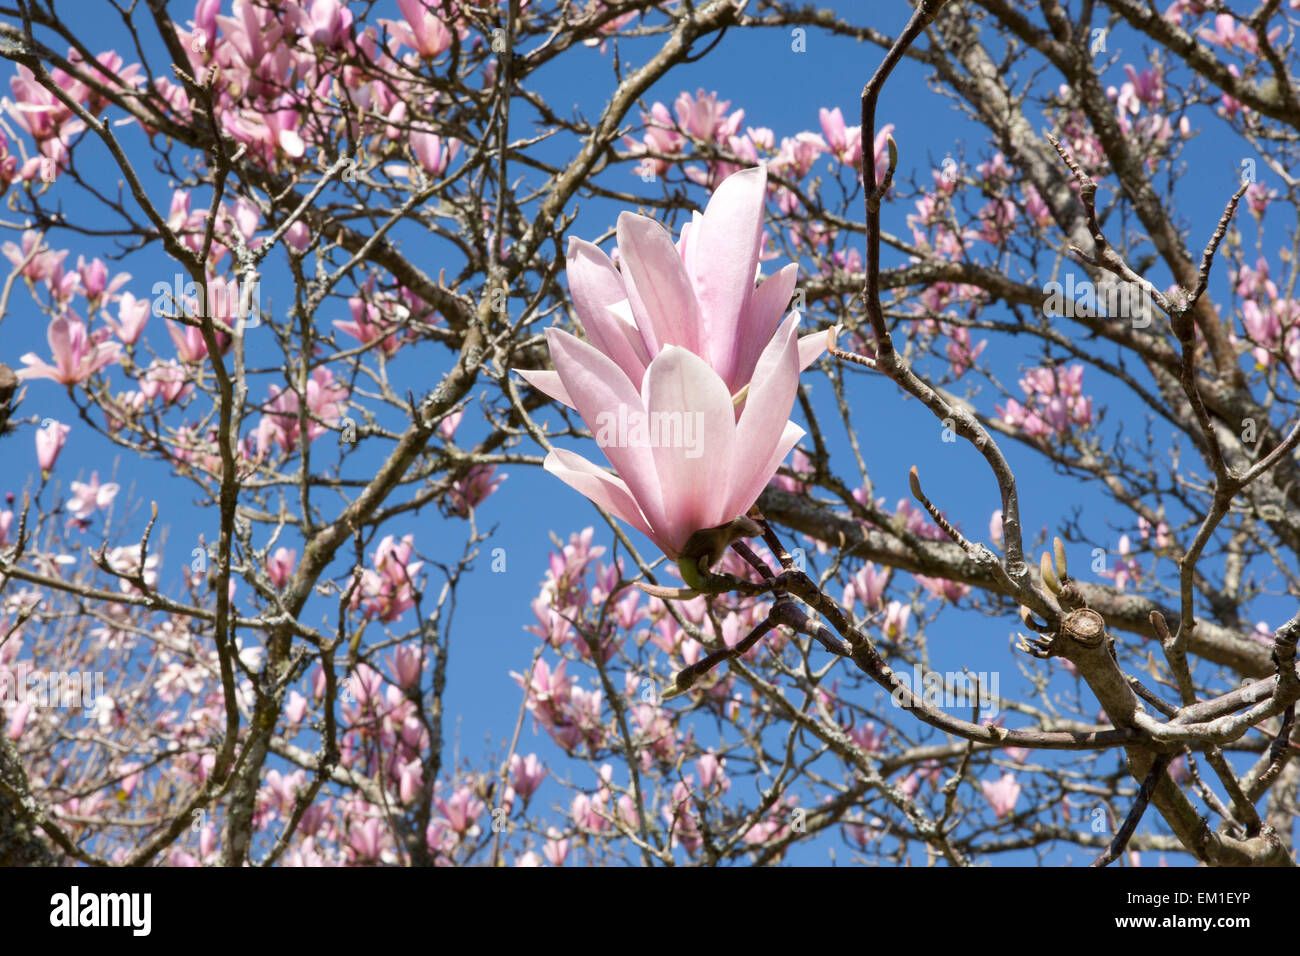 Magnolia tree in flower cornwall stock photos magnolia tree in large pink flowers of magnolia tree at pinetum park st austell cornwall on a spring day mightylinksfo